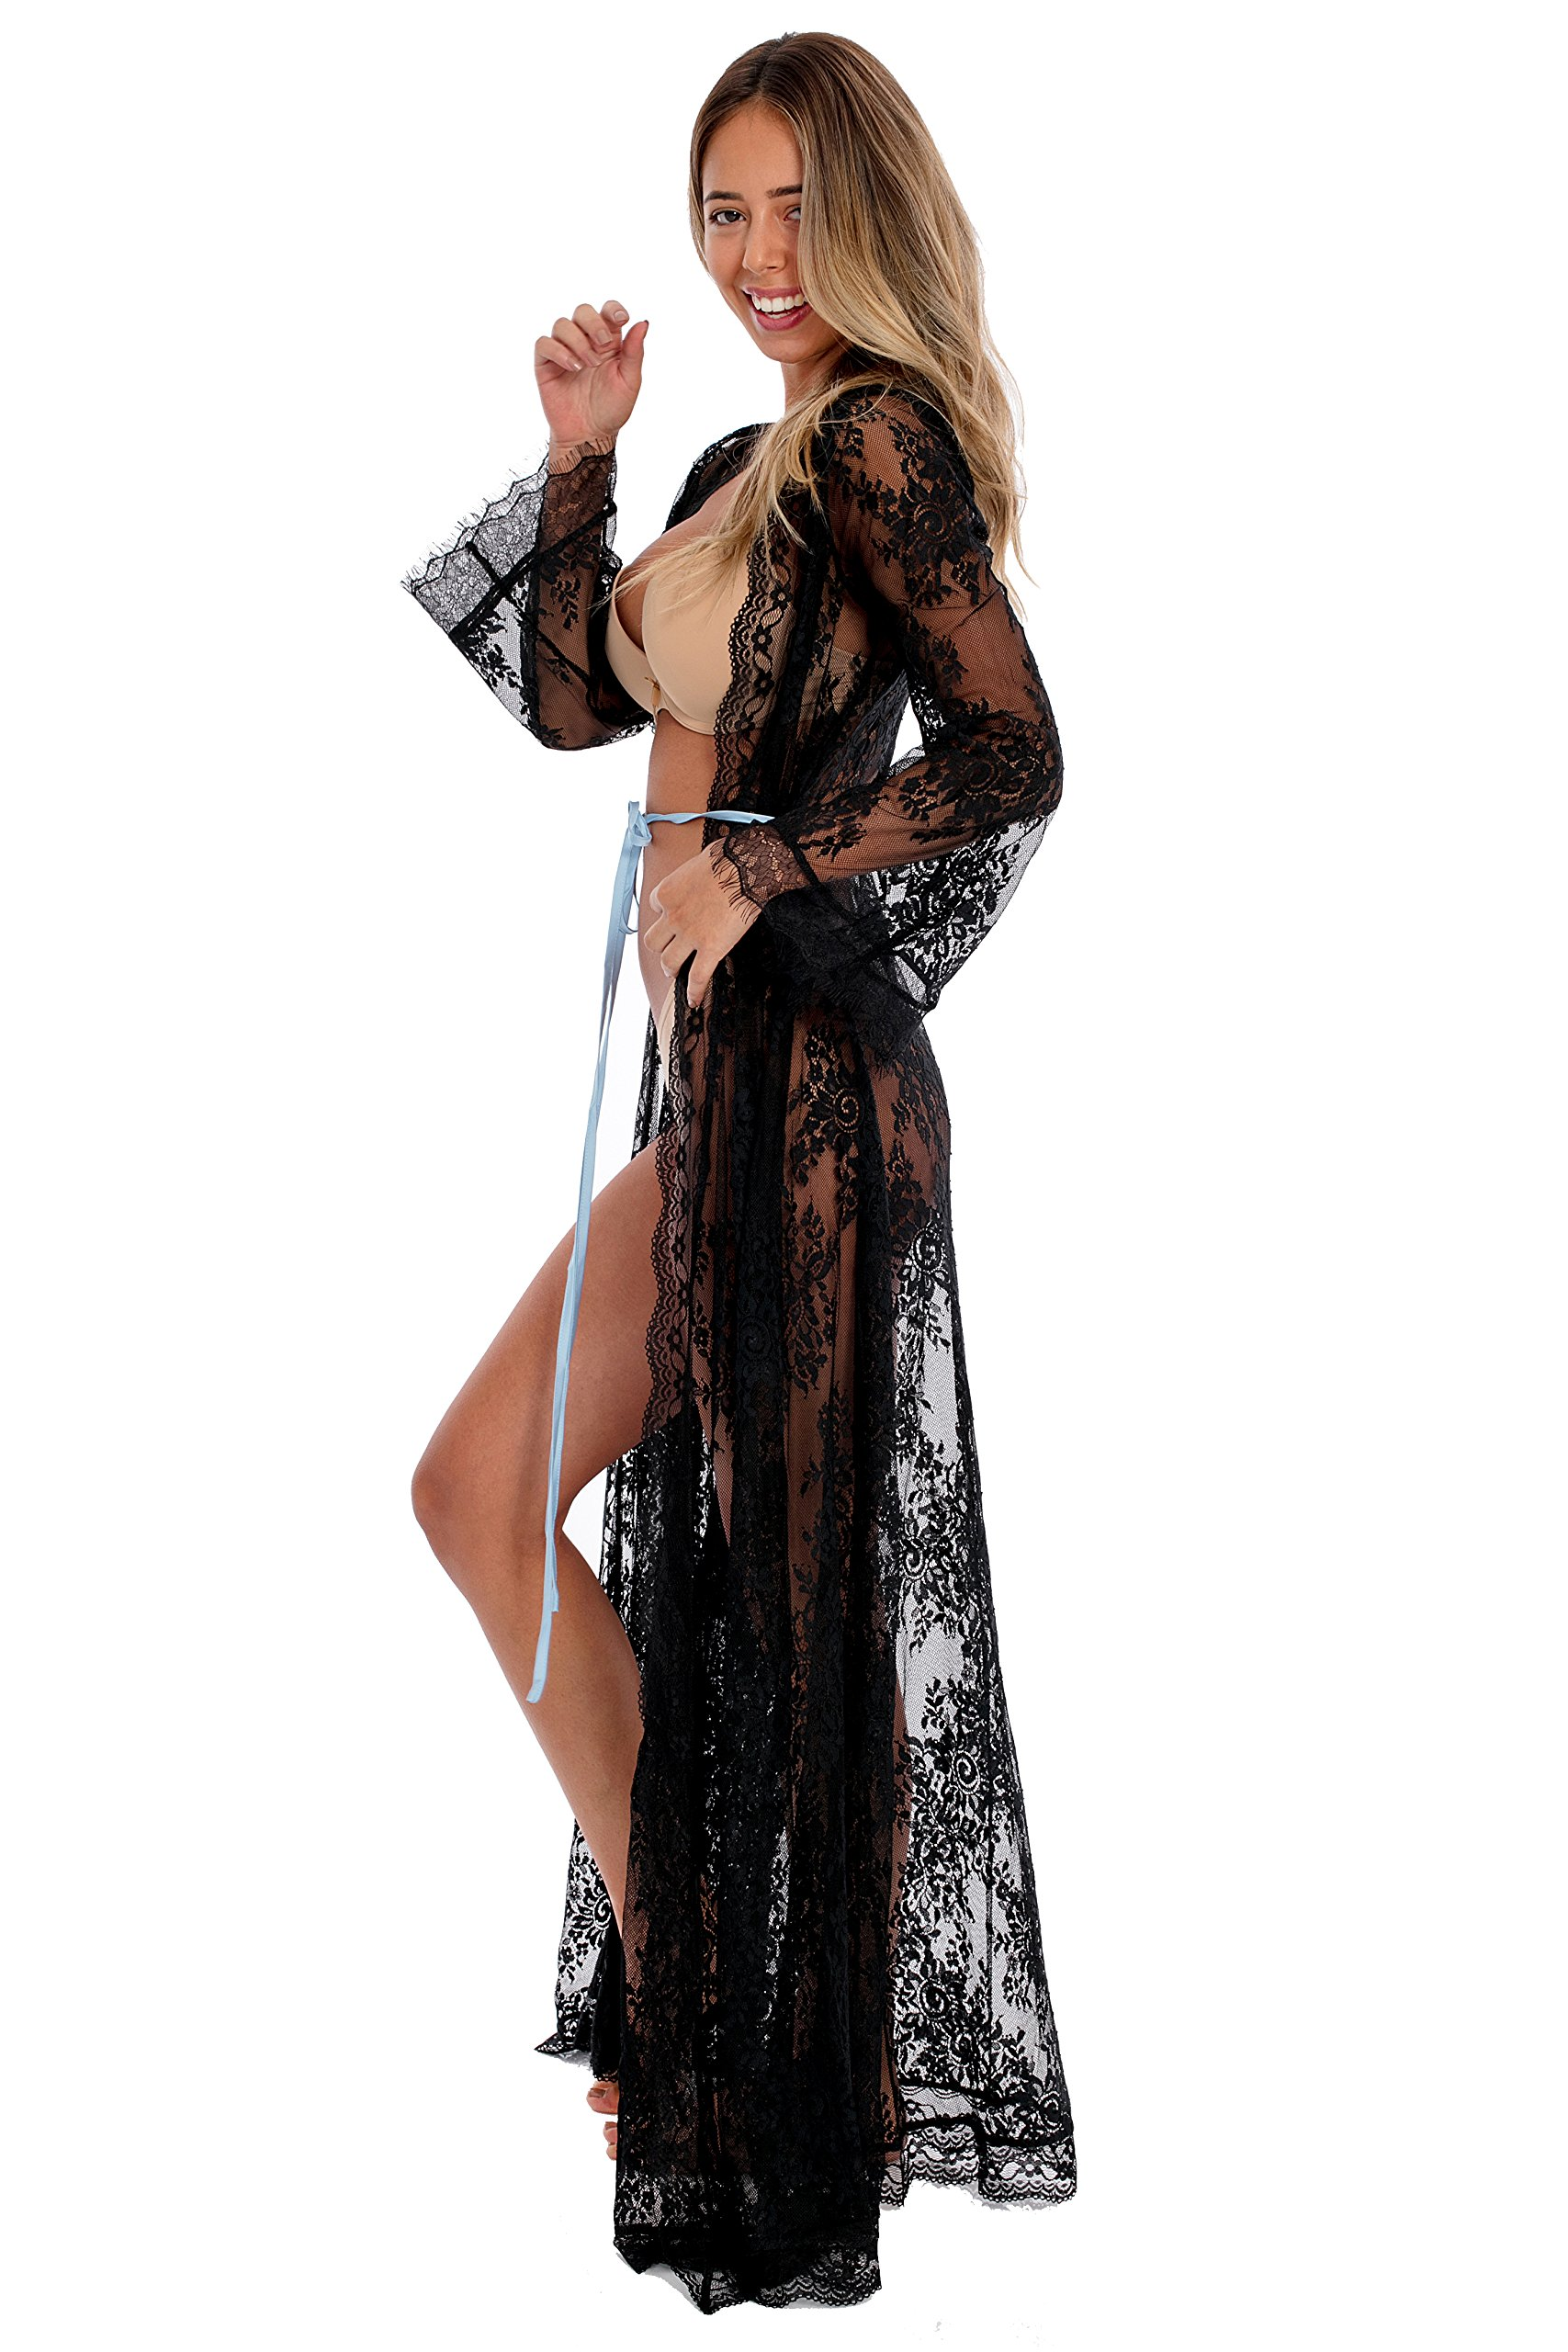 Aporei Lace Kimono for Beach - Sheer Long Robe - Swim Coverup - Lingerie Gift (X-Large, Black)